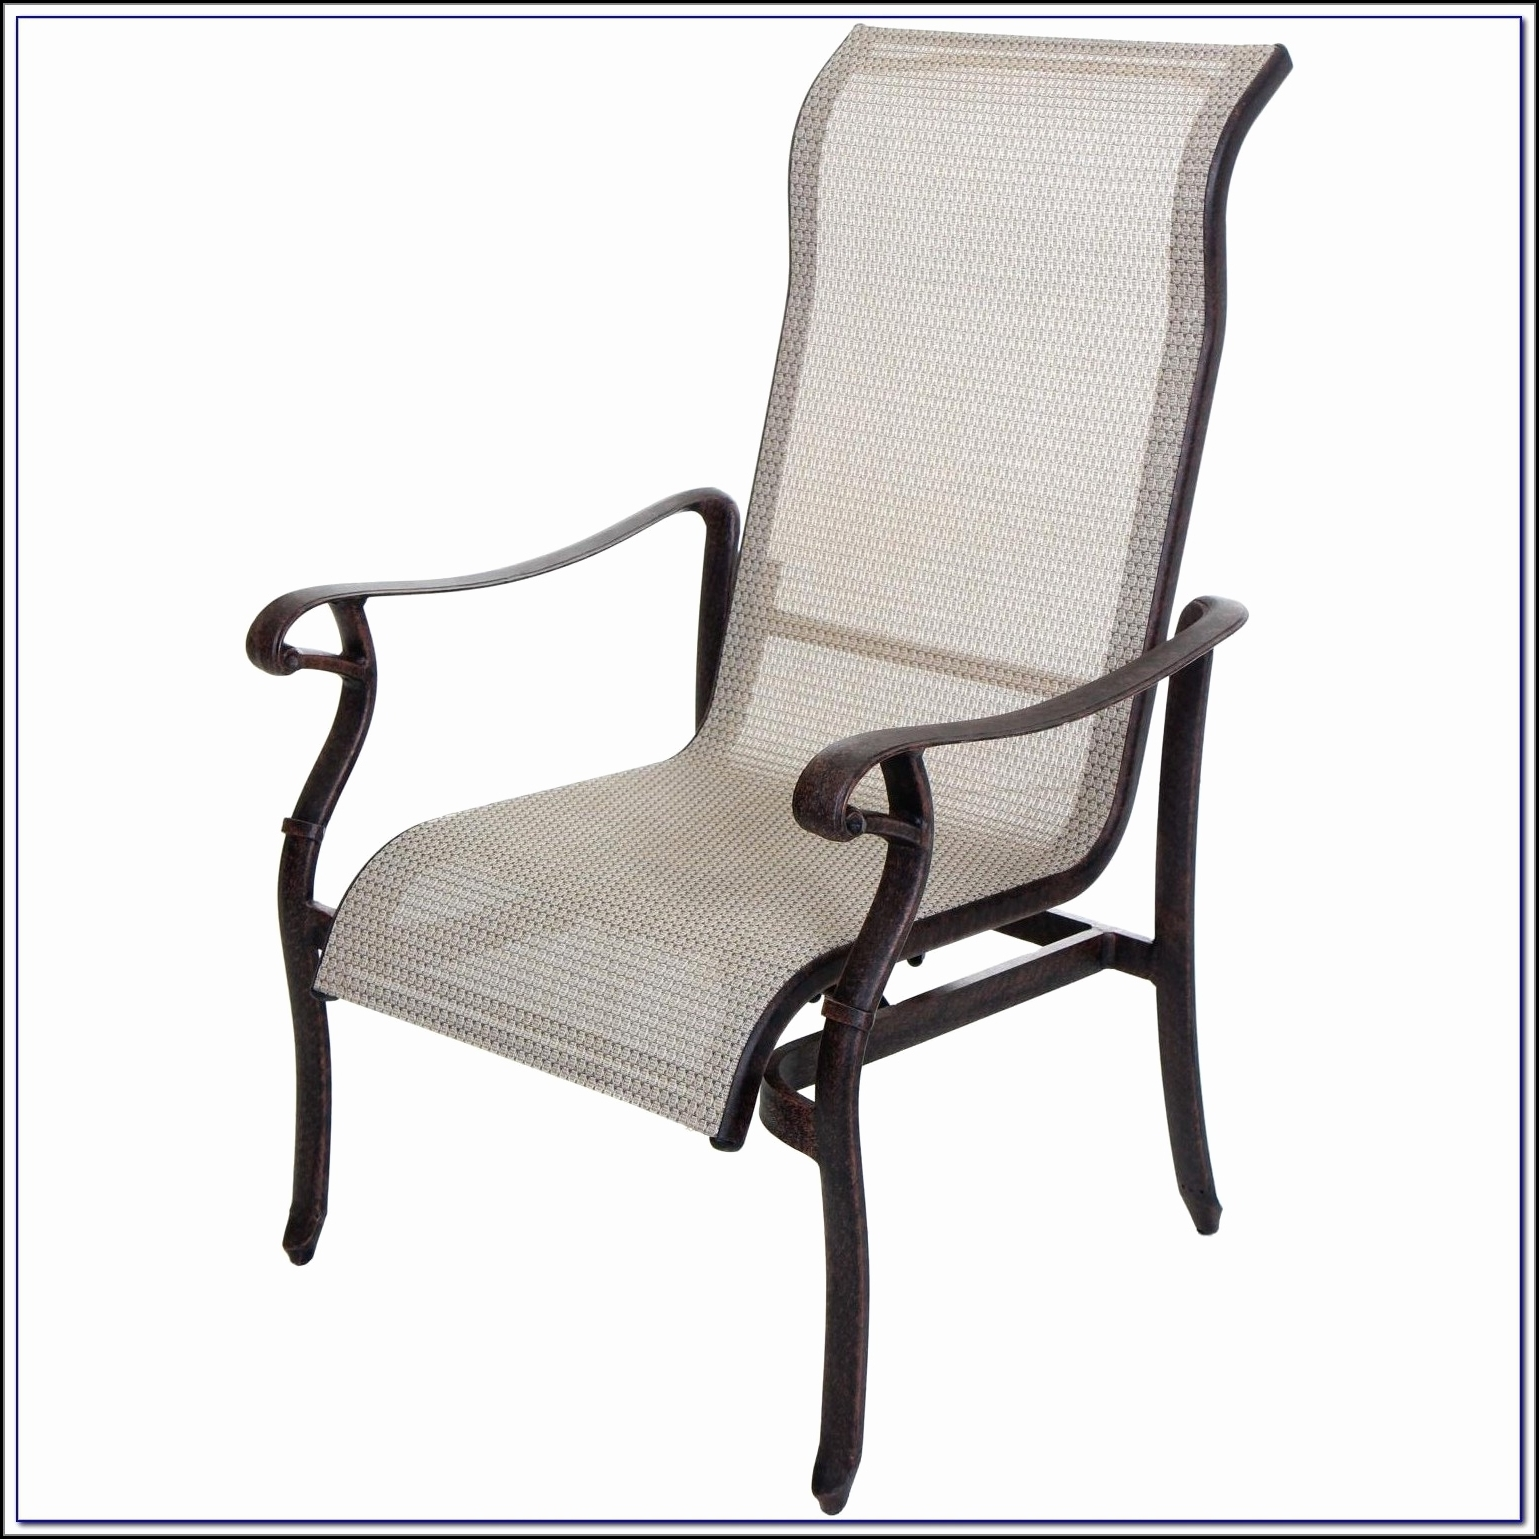 Best And Newest Wrought Iron Chaise Lounges Inside Outdoor : Folding Lounge Chair Indoor Wrought Iron Chaise Lounge (View 14 of 15)